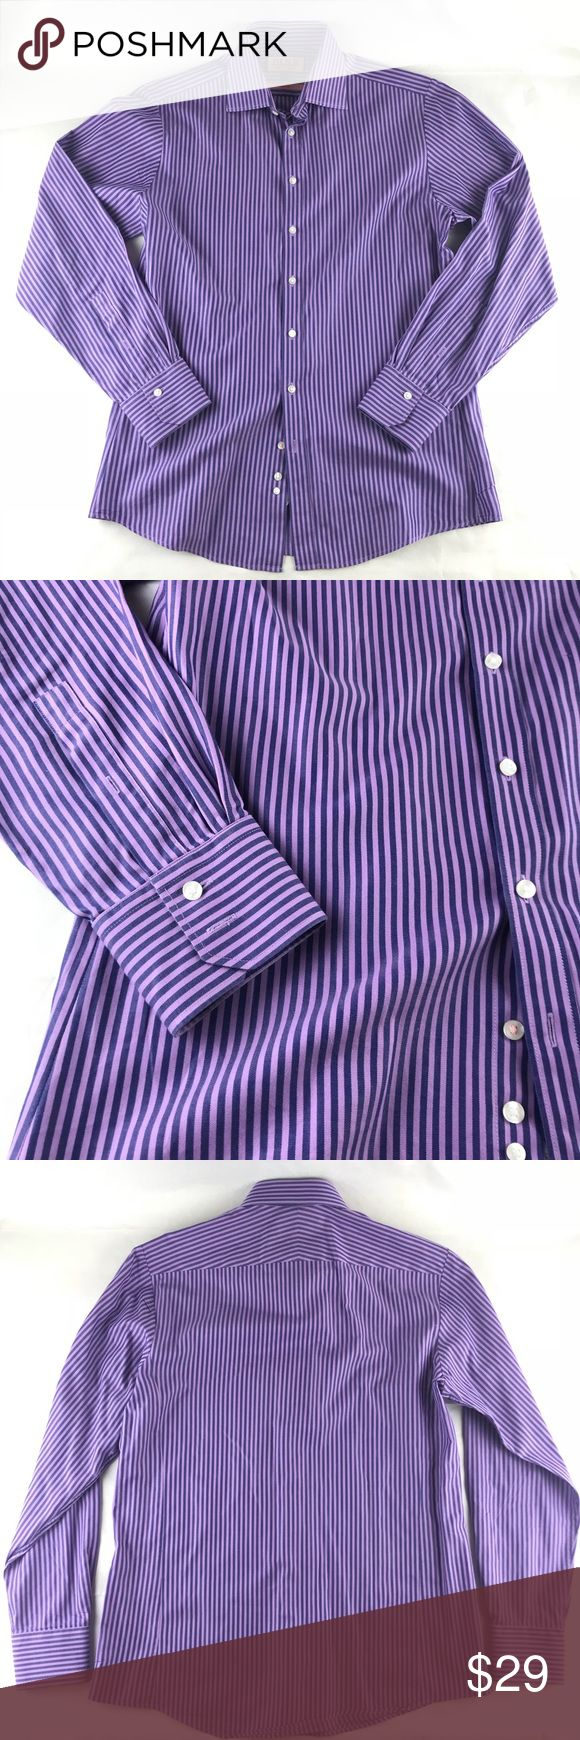 """Thomas Pink Dress Shirt Purple Stripe Slim Fit Thomas Pink Men's Dress Shirt Purple Vertical Stripe Cotton Slim Fit Size 15 1/2  Clean with no holes or stains, from a pet & smoke free environment.  Approximate Measurements  Size: 15.5  Material: 100% Cotton  Shoulders: 18""""  Chest (pit to pit): 22""""  Length: 29.5""""  We make every effort to inspect our items & strive for accuracy in our postings. Please be sure to review all pictures & feel free to ask any questions prior to purchasing. Thomas…"""